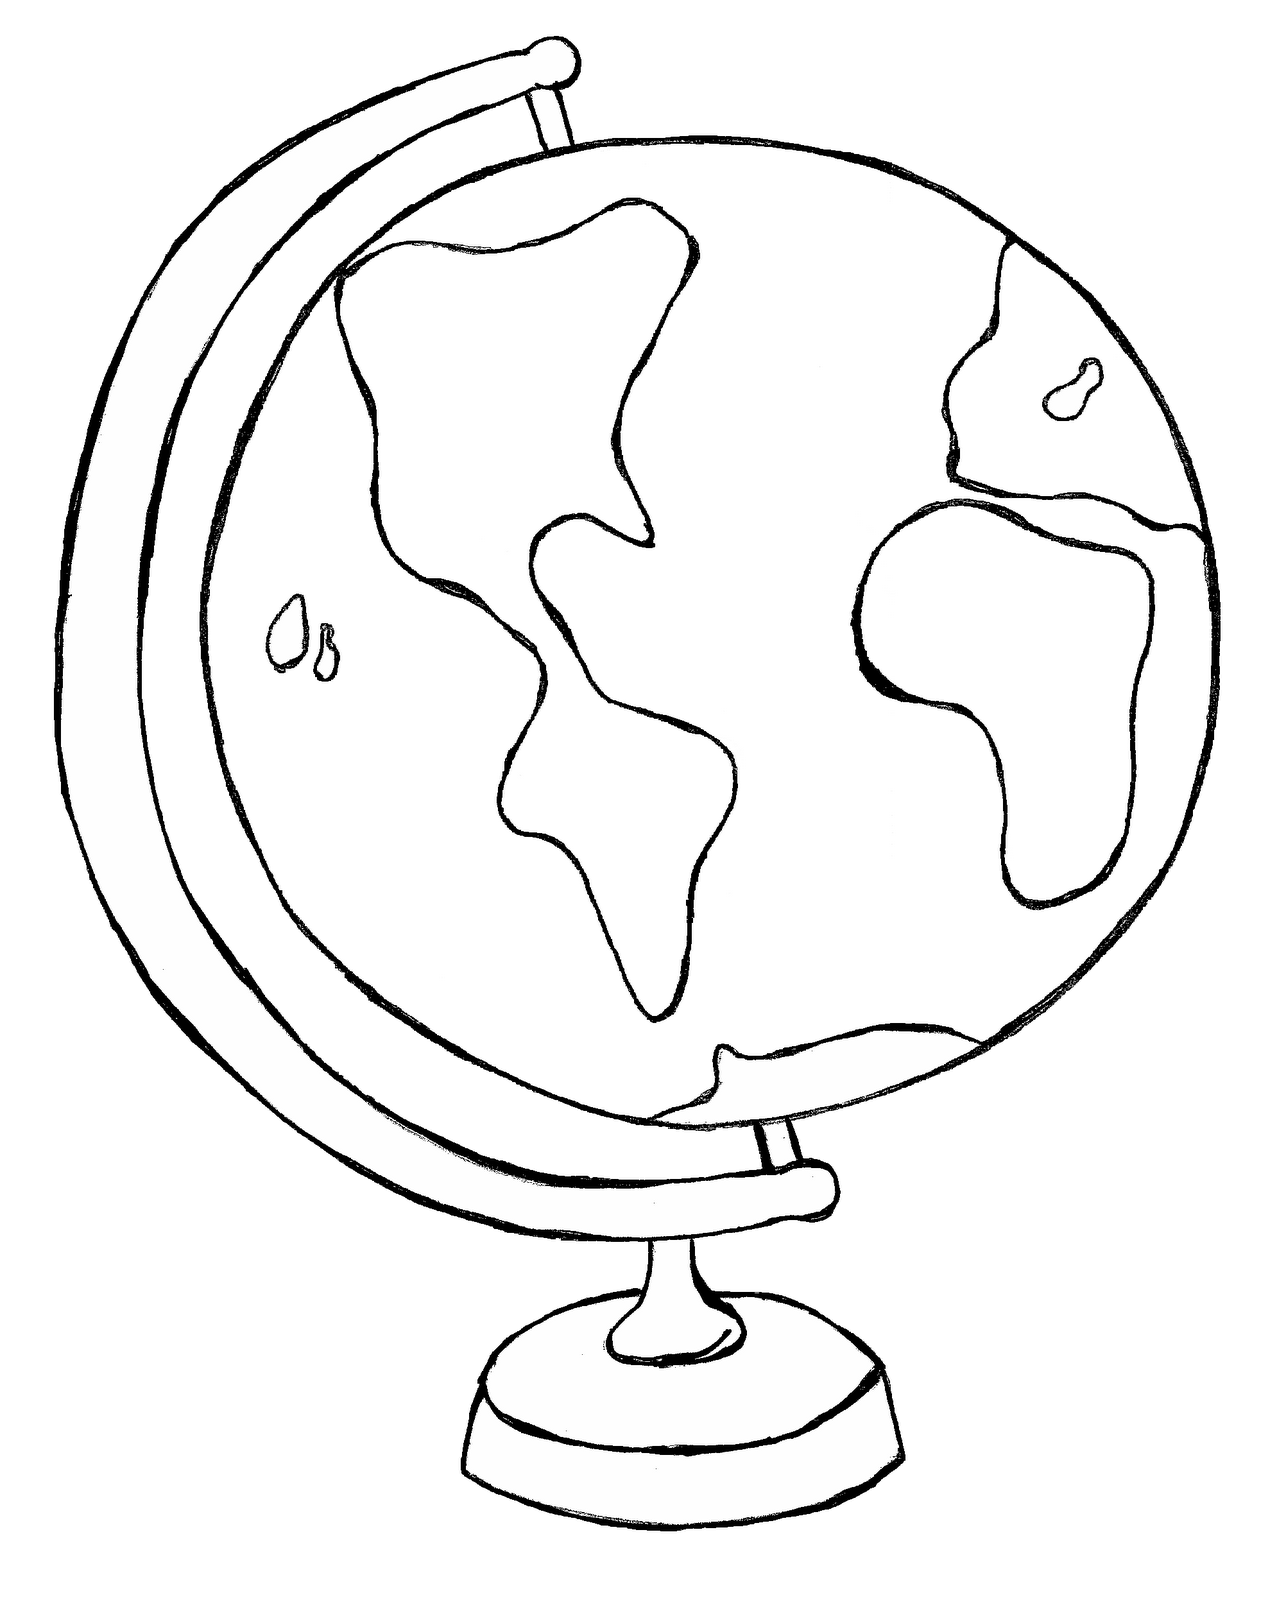 Clip Art By Carrie Teaching First My World Doodles Clip